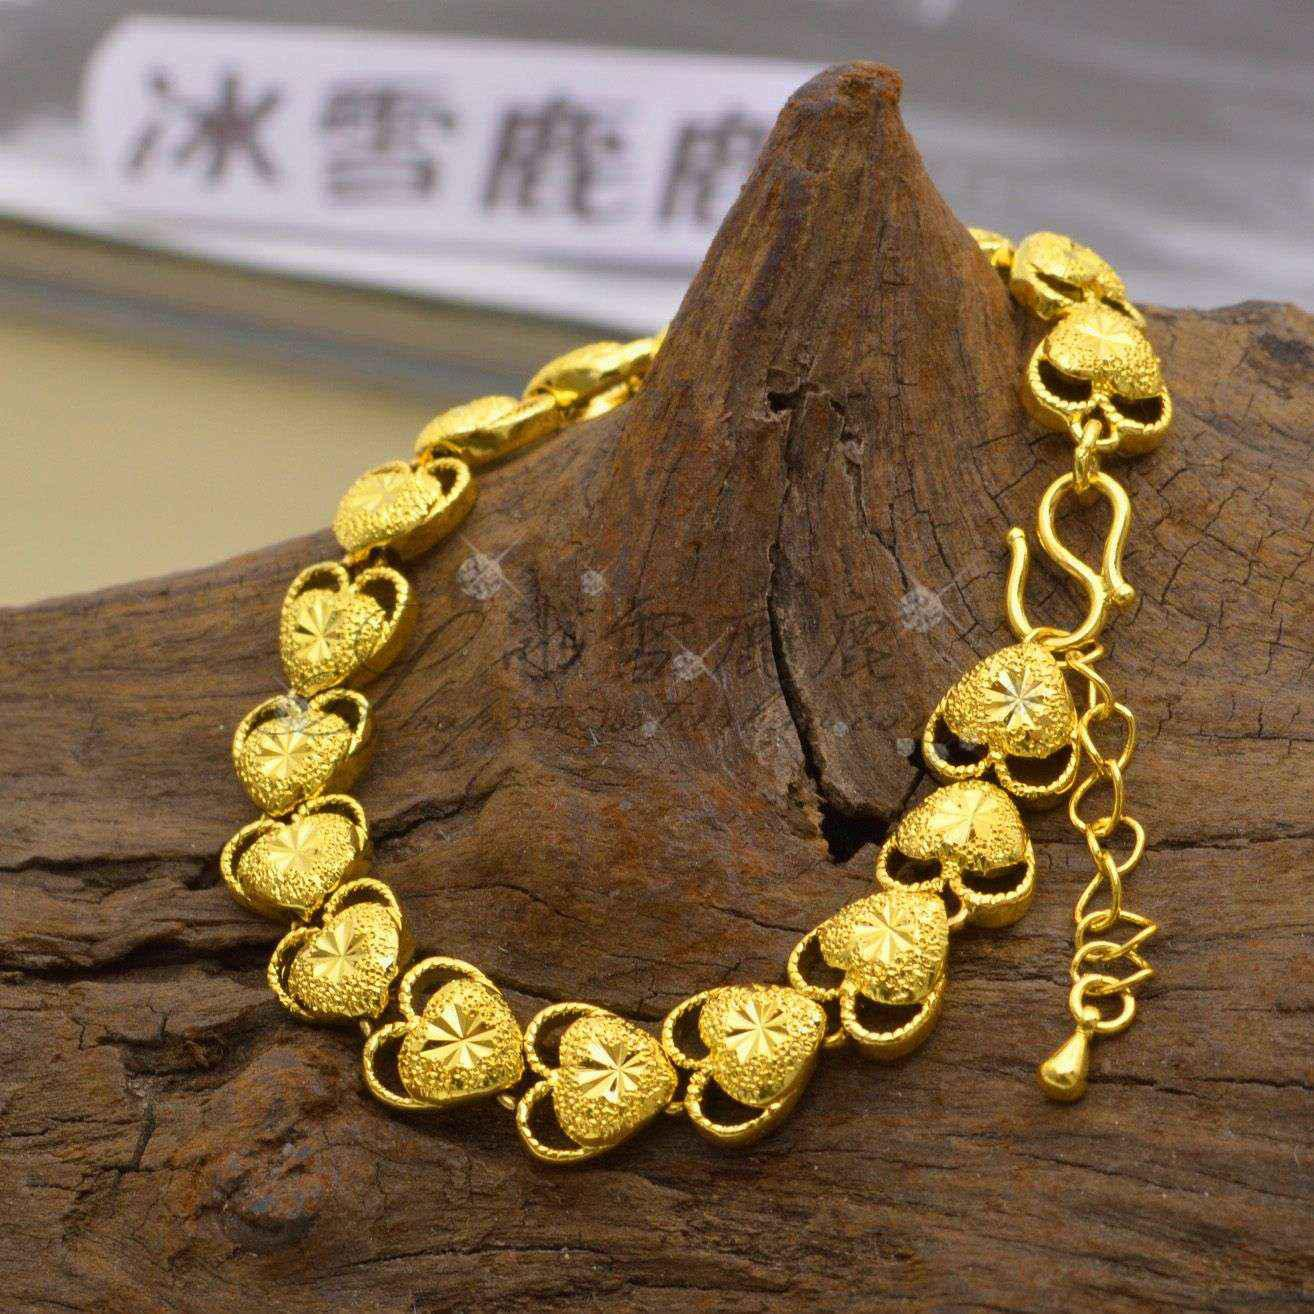 gold mostbeautifulthings gallery of with bracelet beautiful bracelets photos